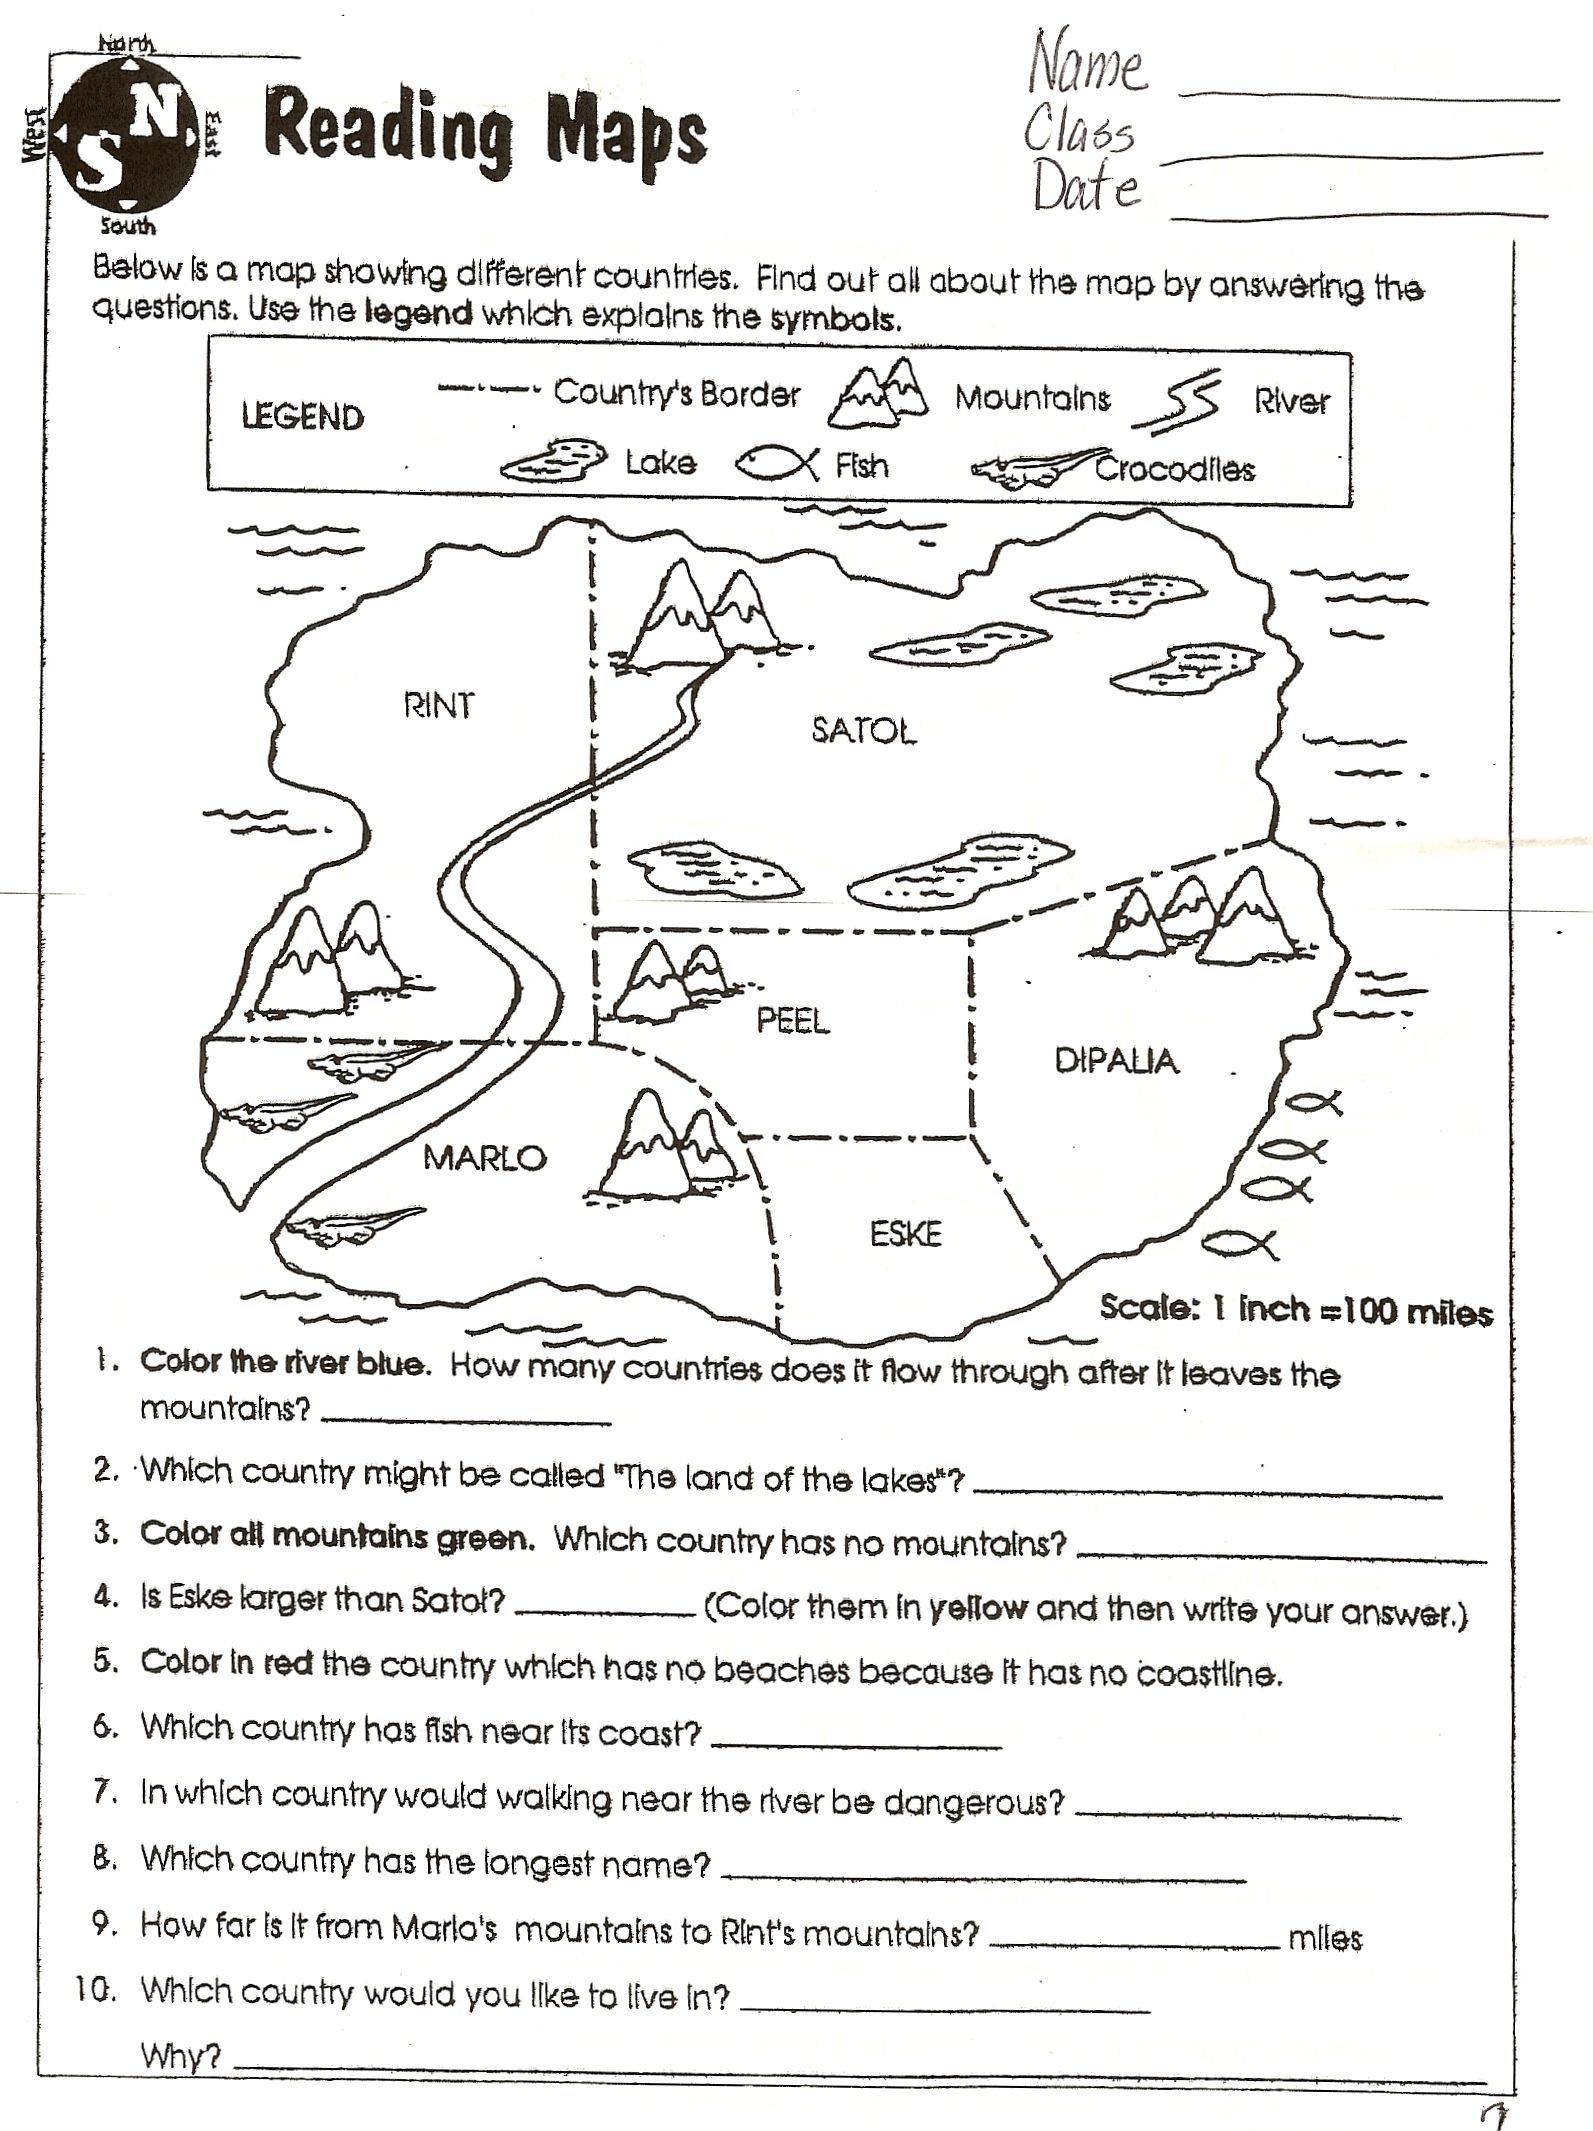 Social Studies Worksheet 3rd Grade Reading Worksheets Grade 6th social Stu S Prehension